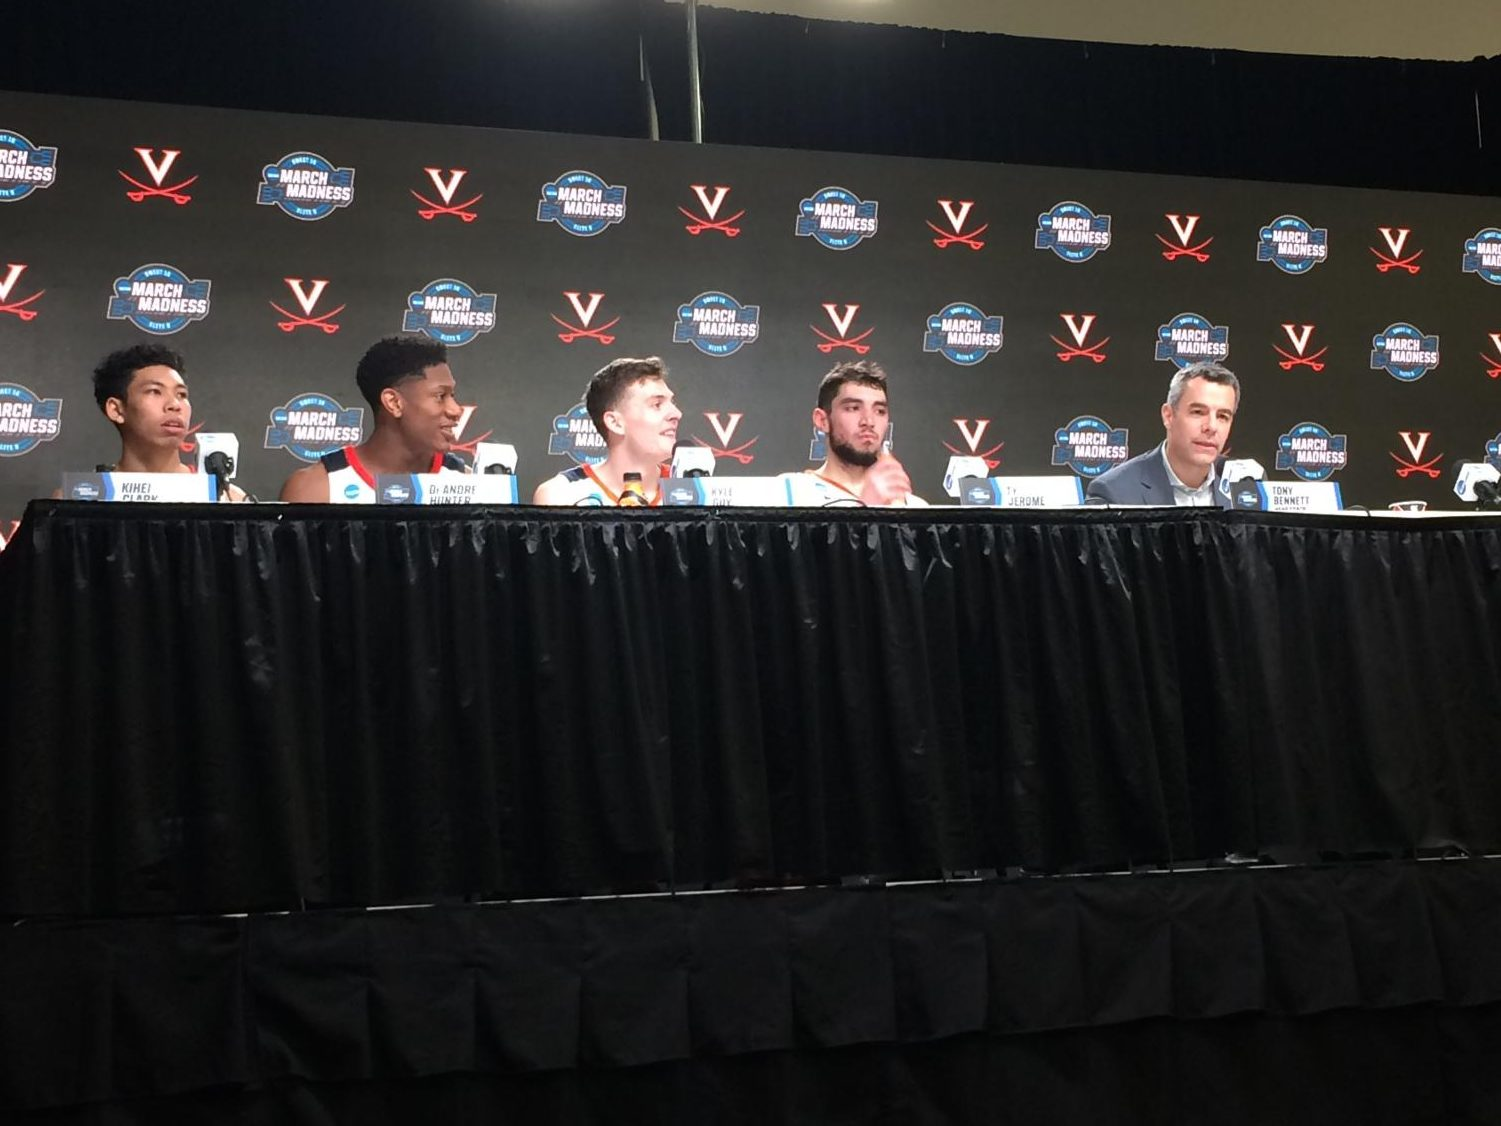 The players and coach of Virginia men's basketball team in a press conference where Delphi Bracketology members looked on.